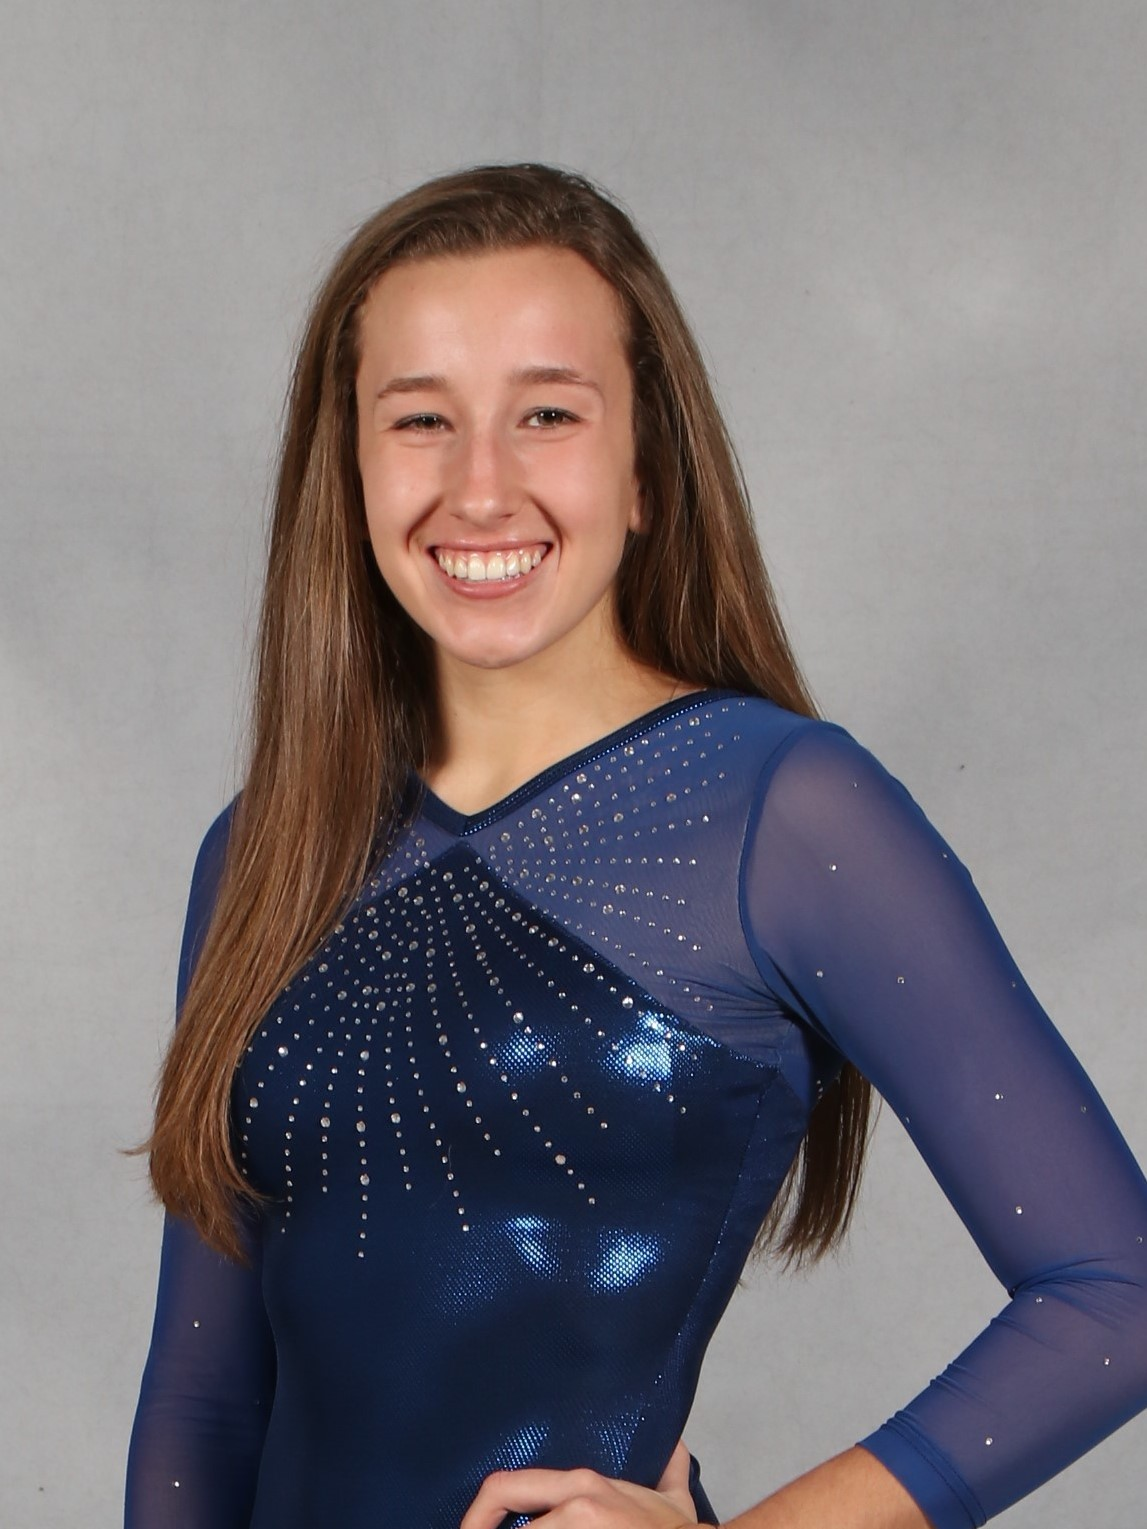 American Family Insurance Athlete of the Week 2/14/19